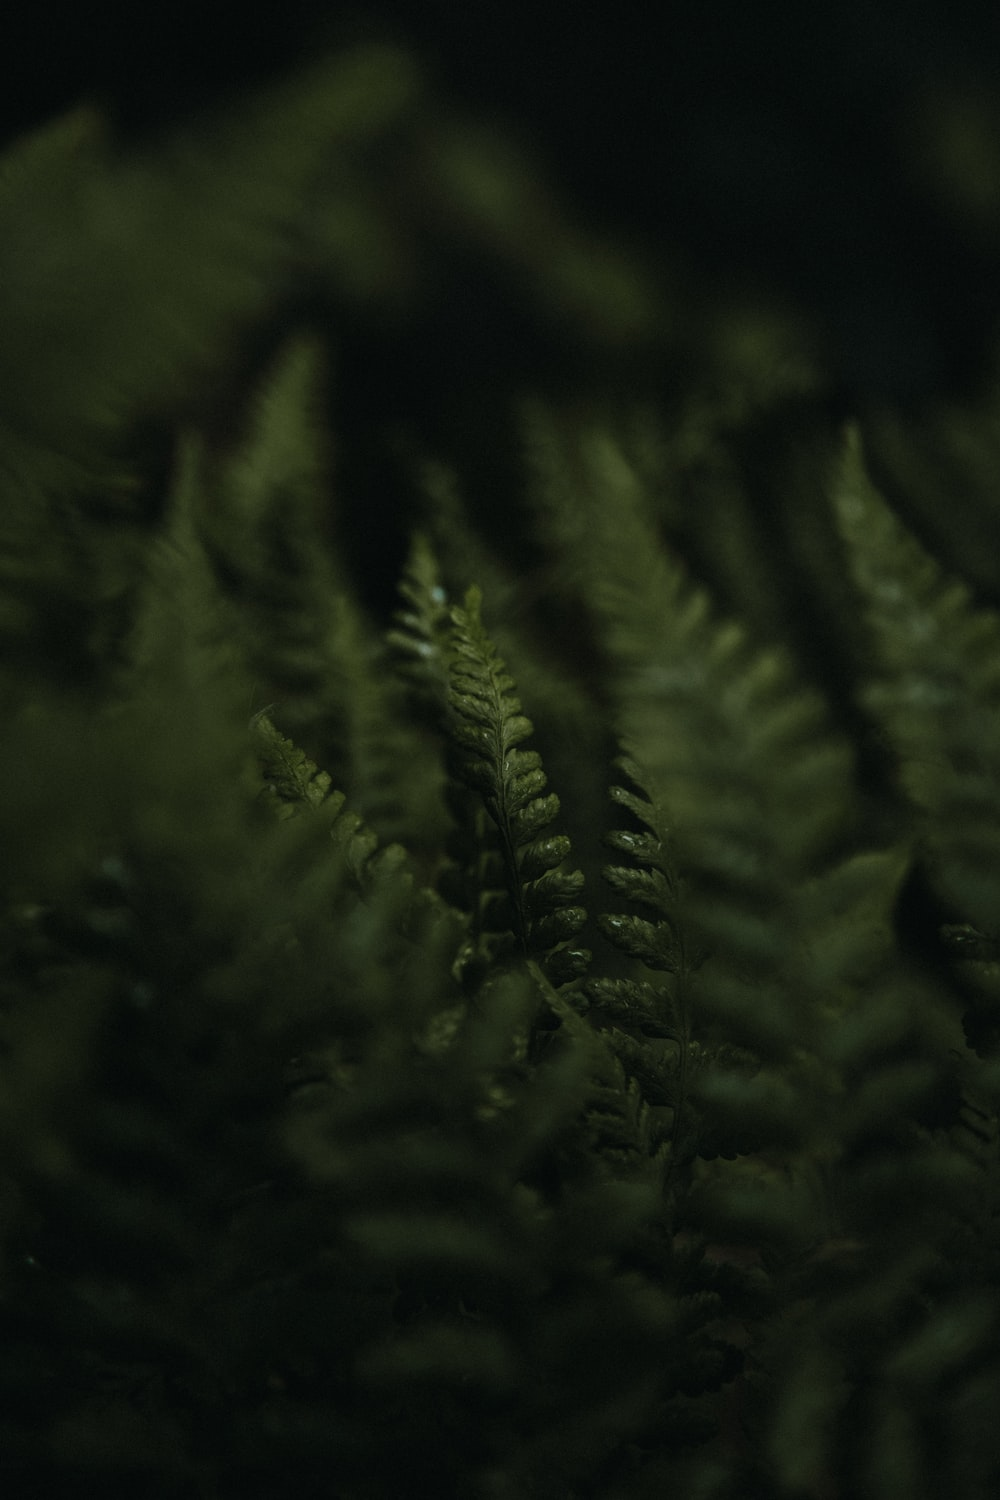 selective photo of fern plant